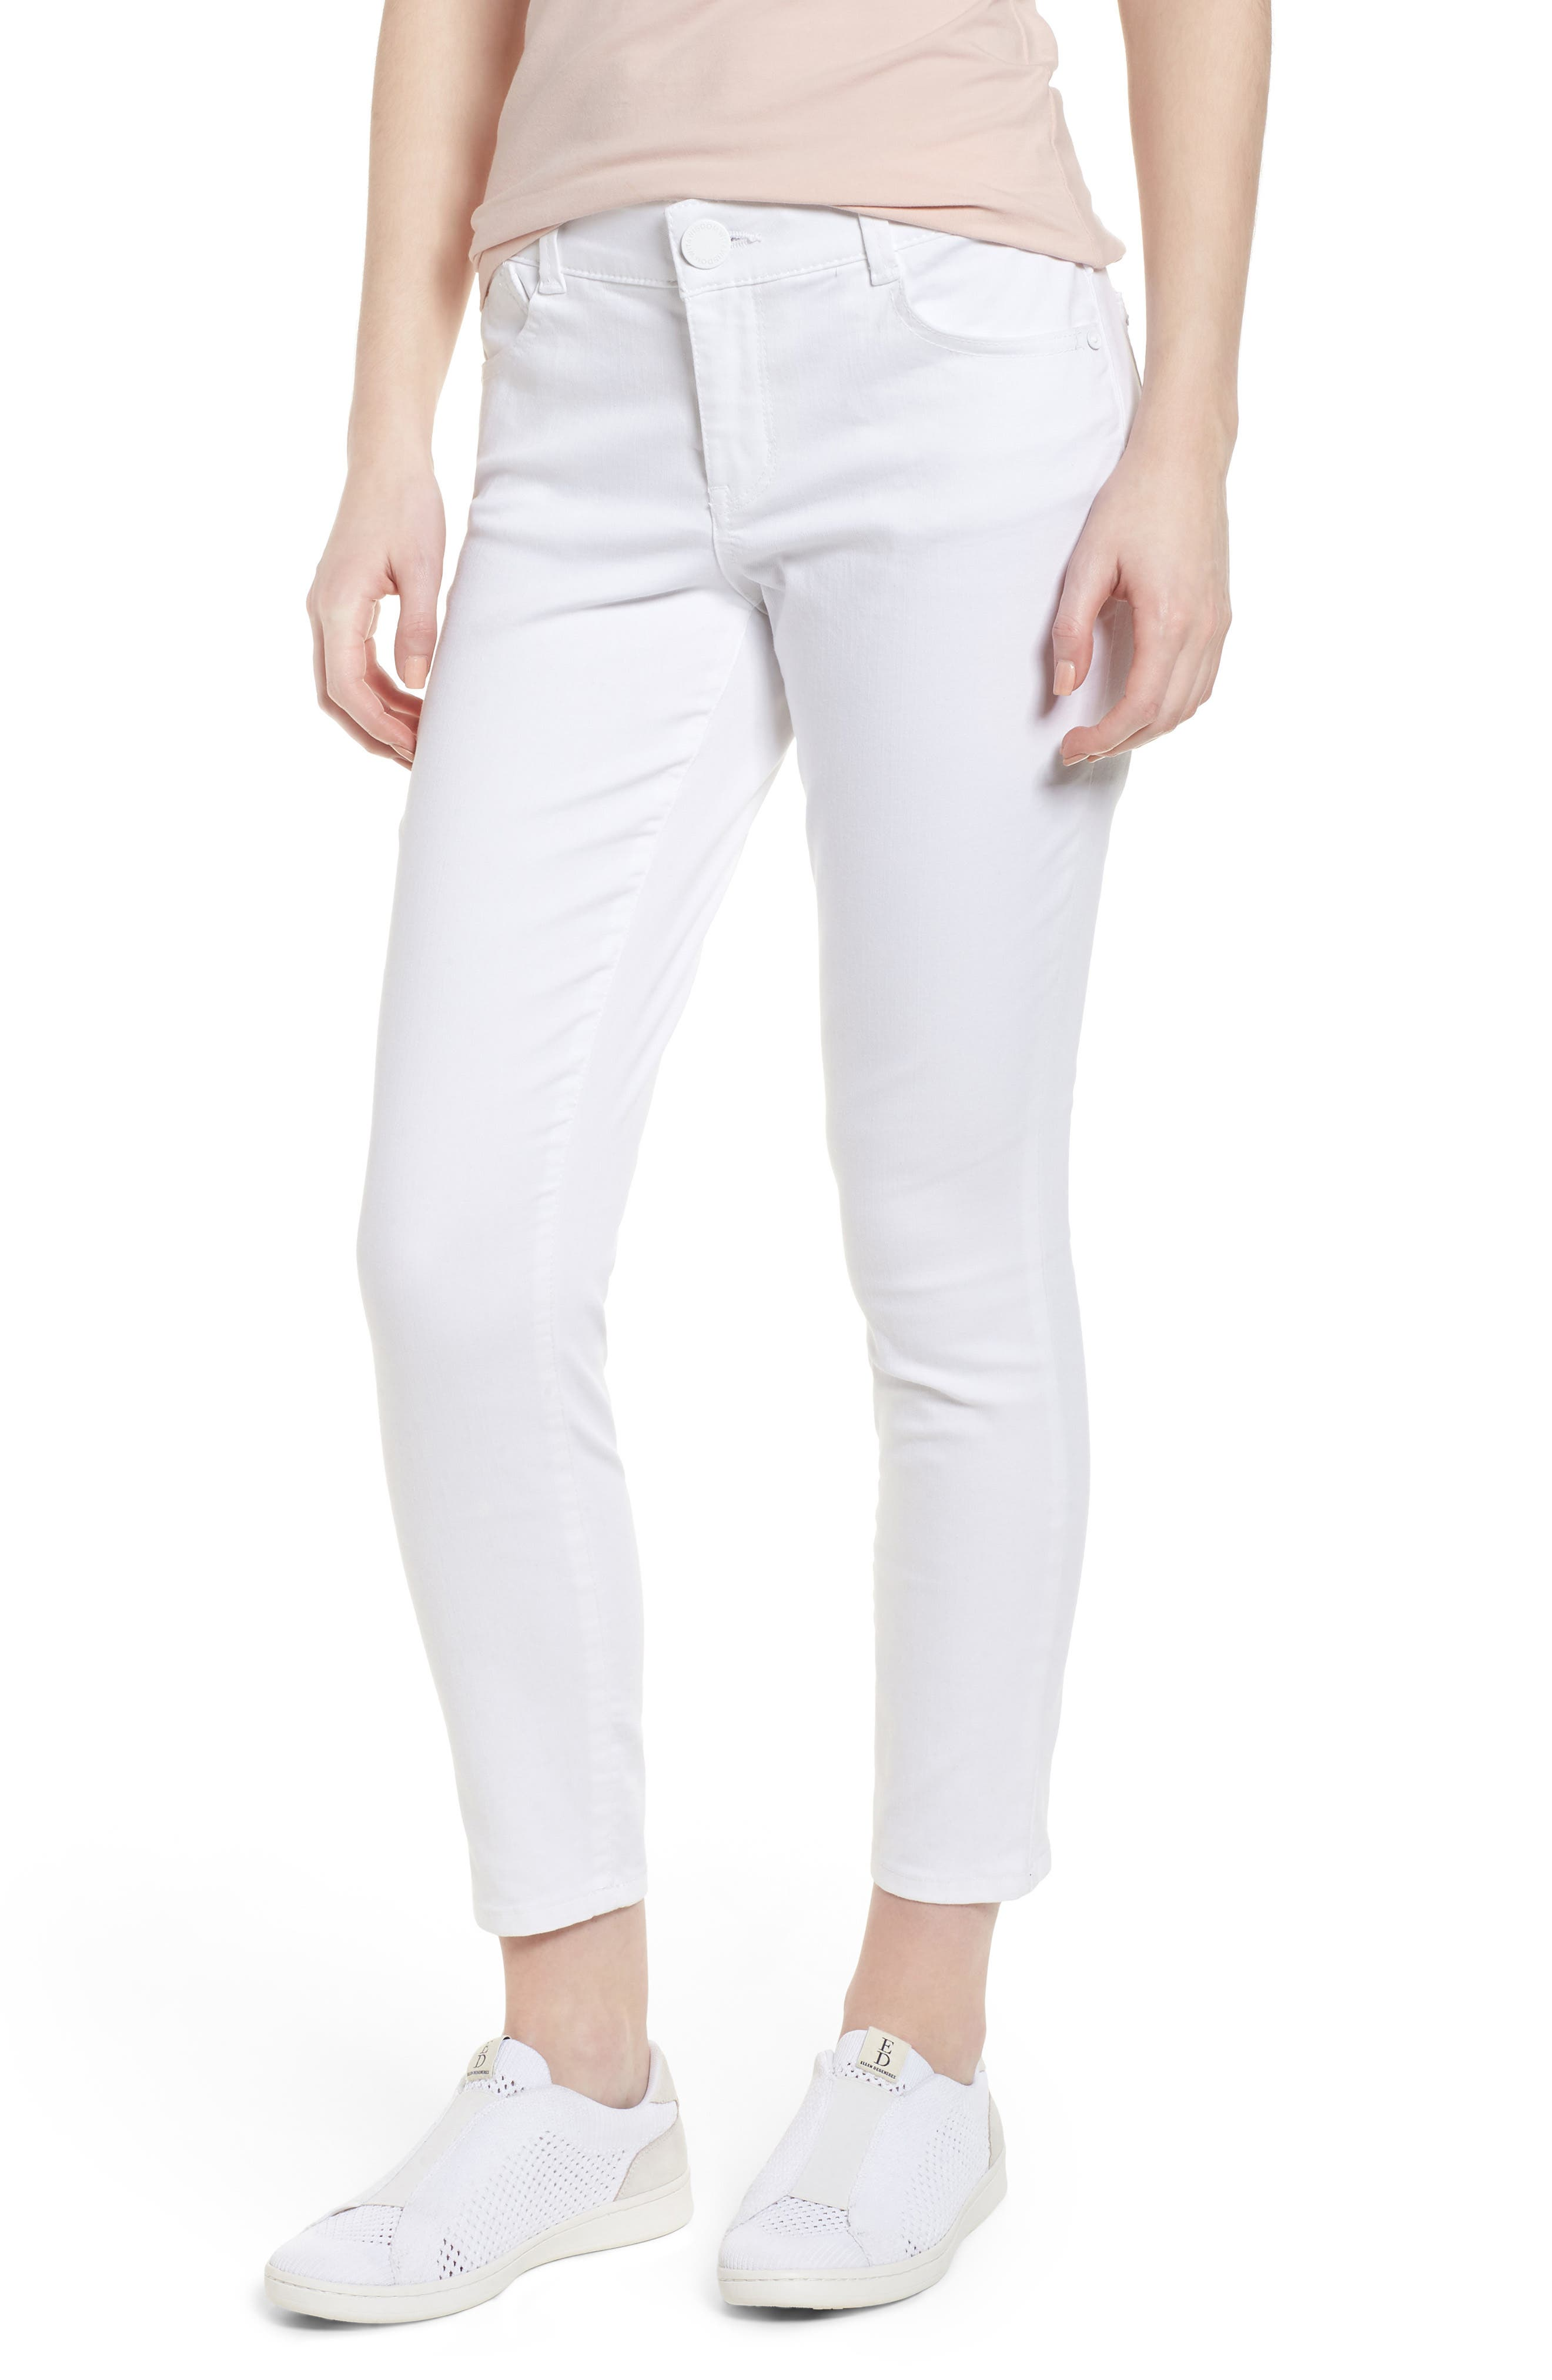 Ab-solution Ankle Skimmer Jeans,                             Main thumbnail 1, color,                             Optic White